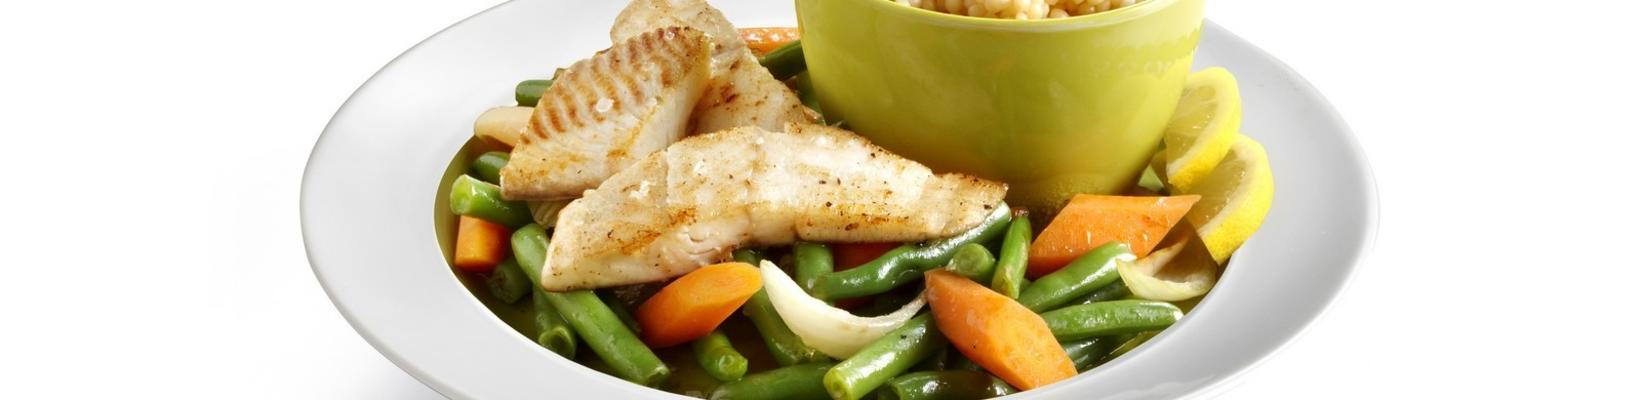 tilapia from the wok with carrots and beans